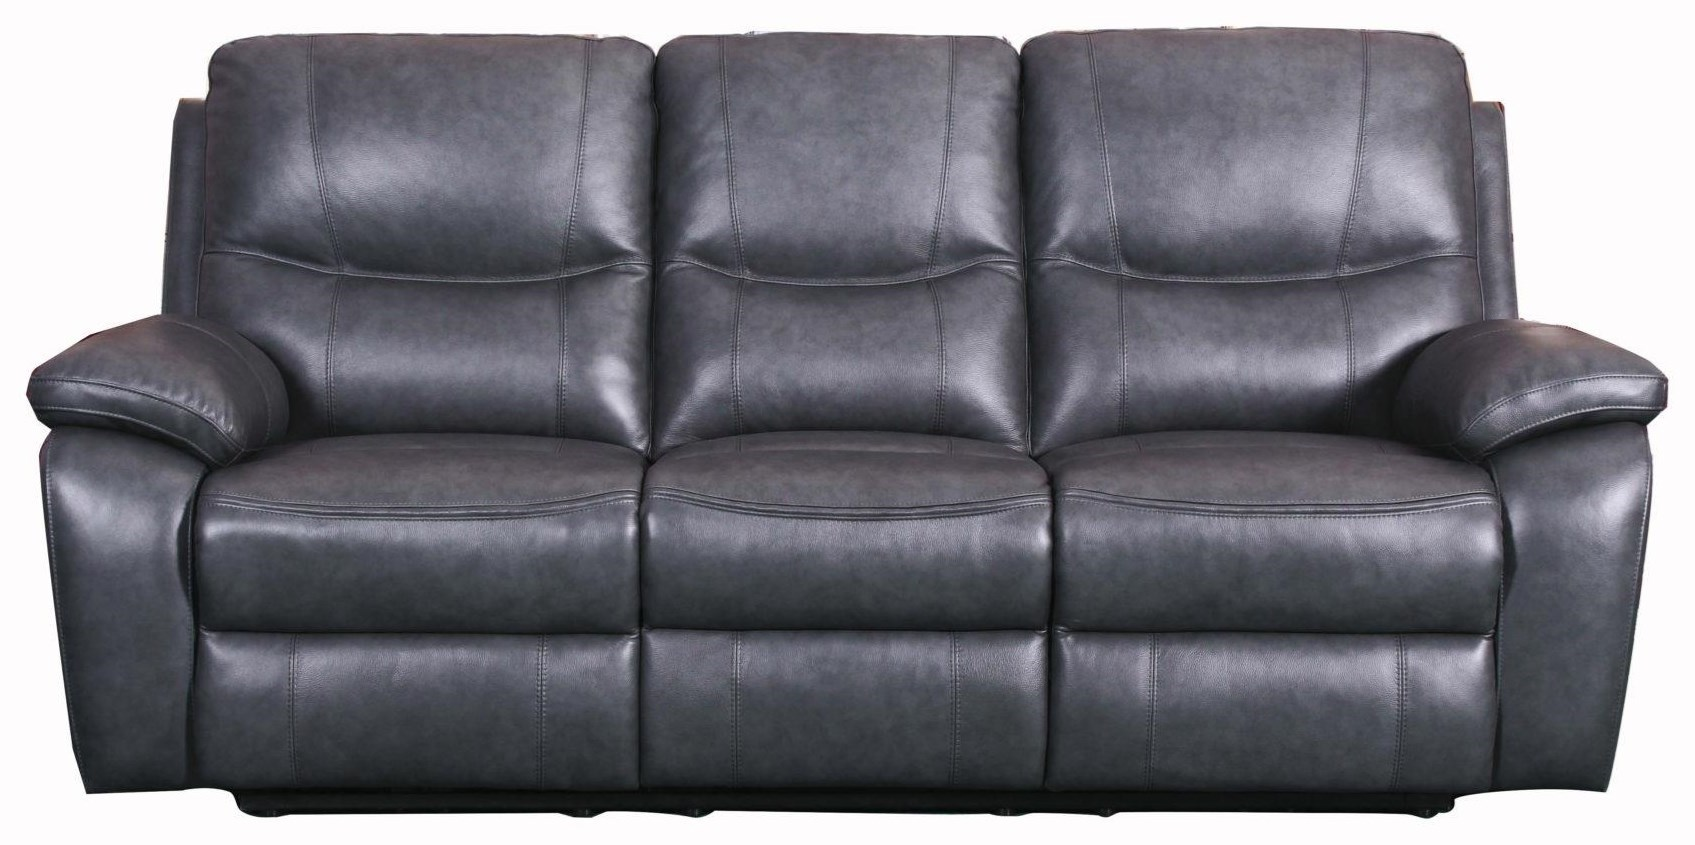 Sofa With Recliner Carter Toby Gray Sofa Recliner W Power By Barcalounger At Dream Home Furniture